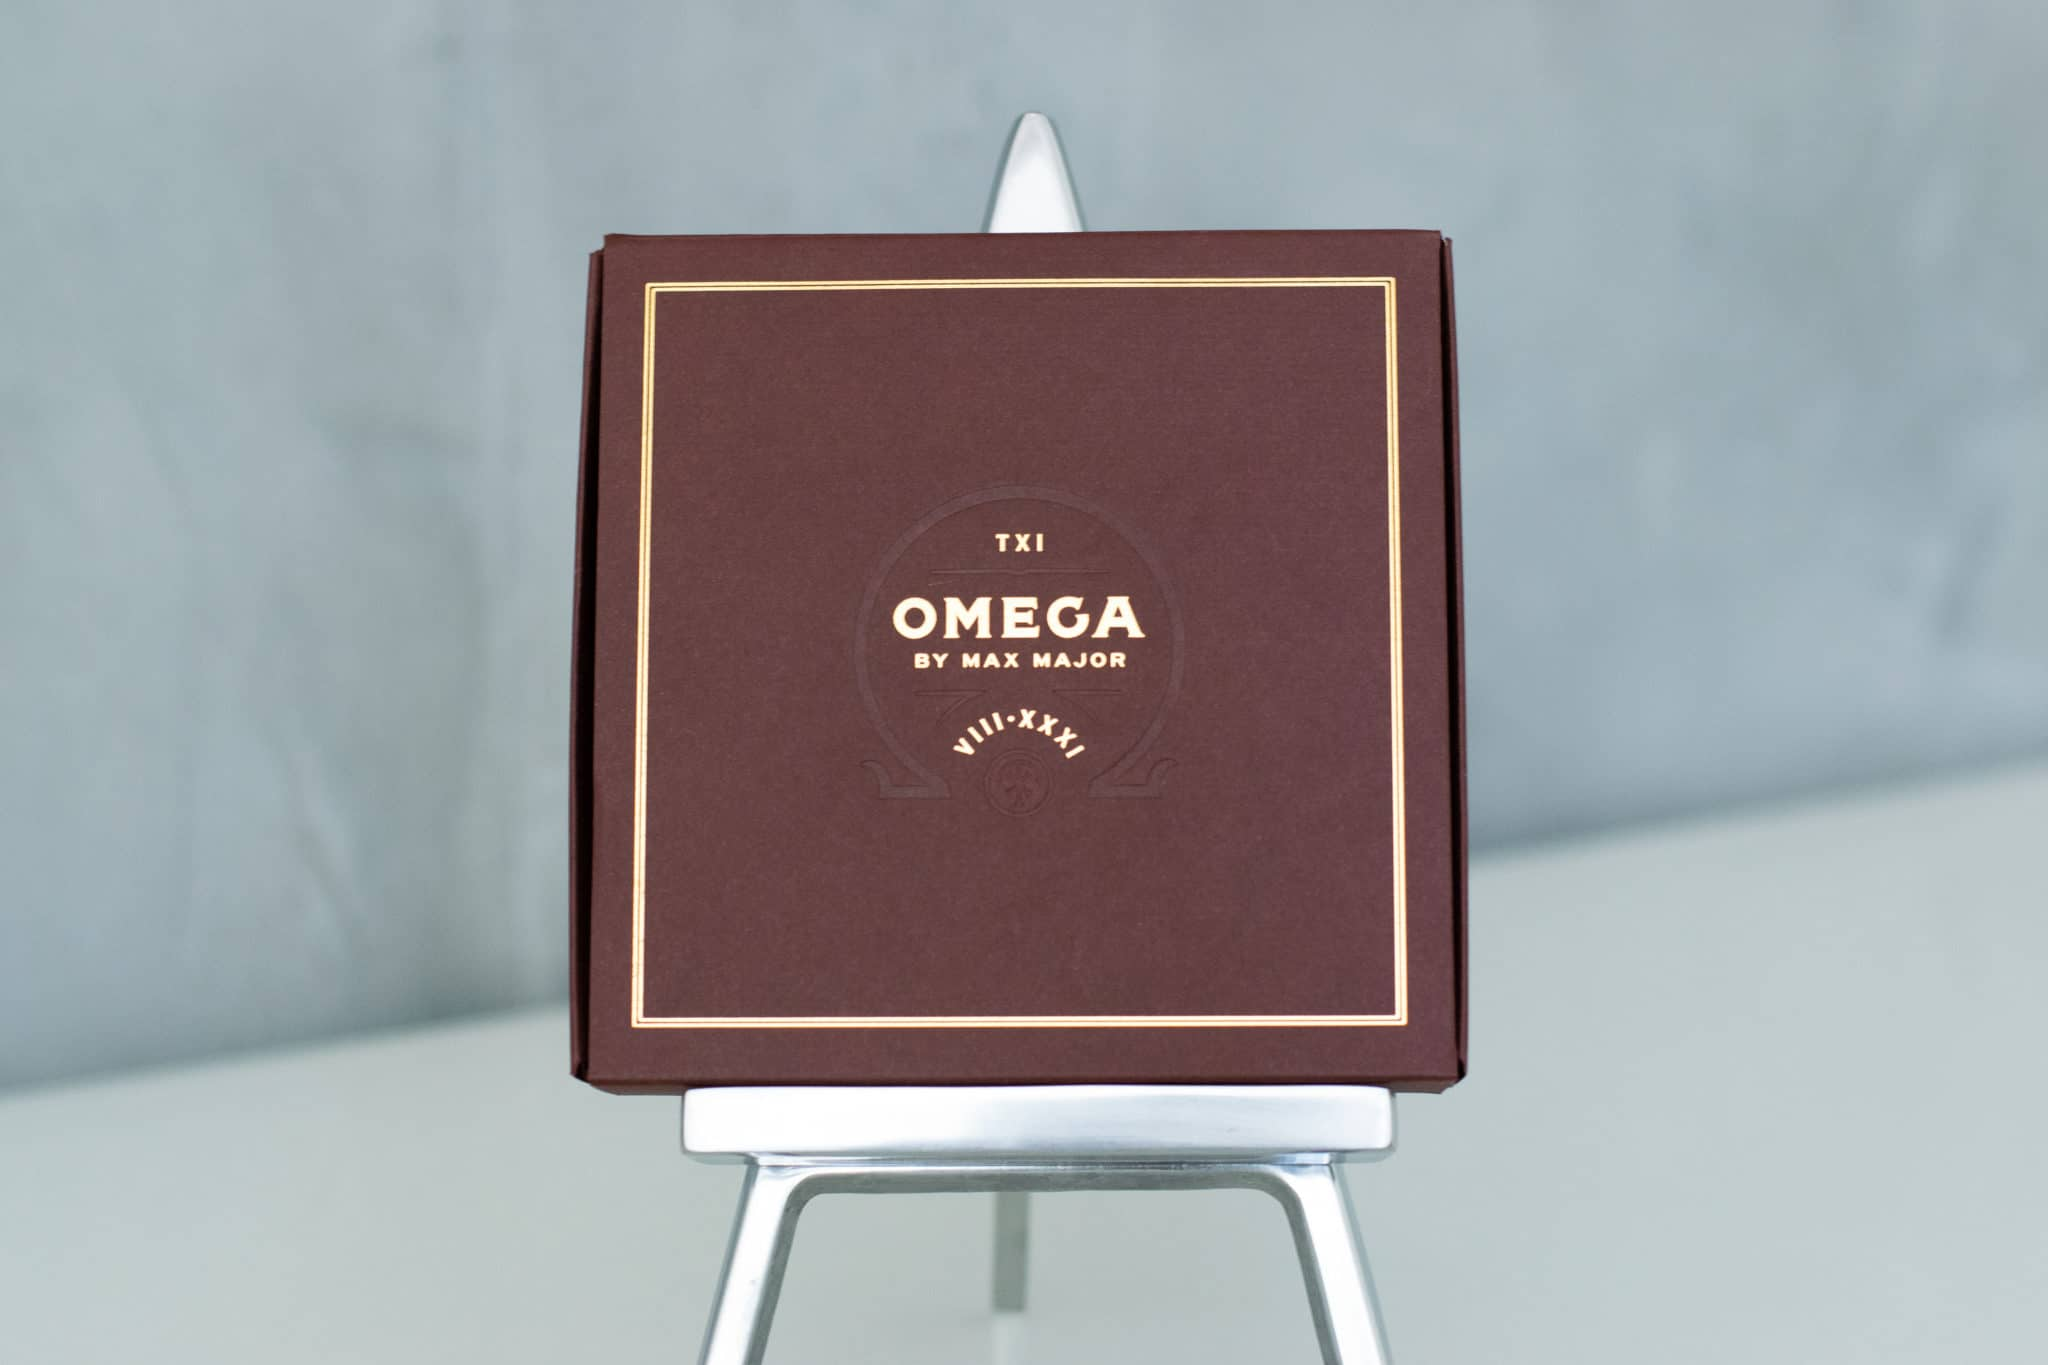 Omega by Max Major Galerie